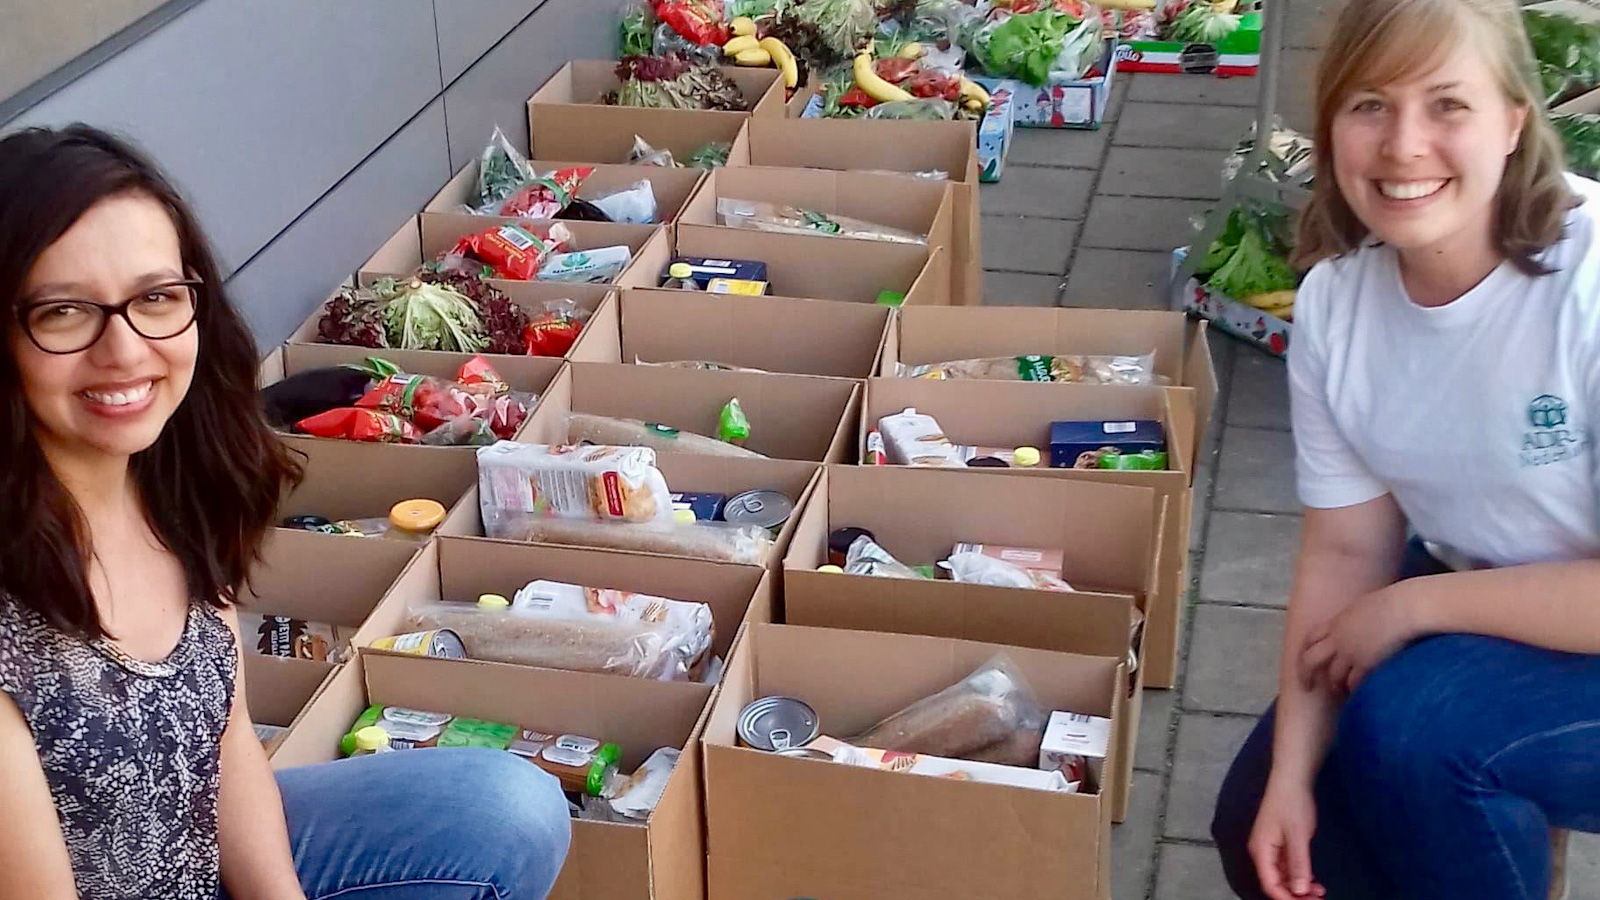 Ana and Esther help distribute food with ADRA in the Netherlands